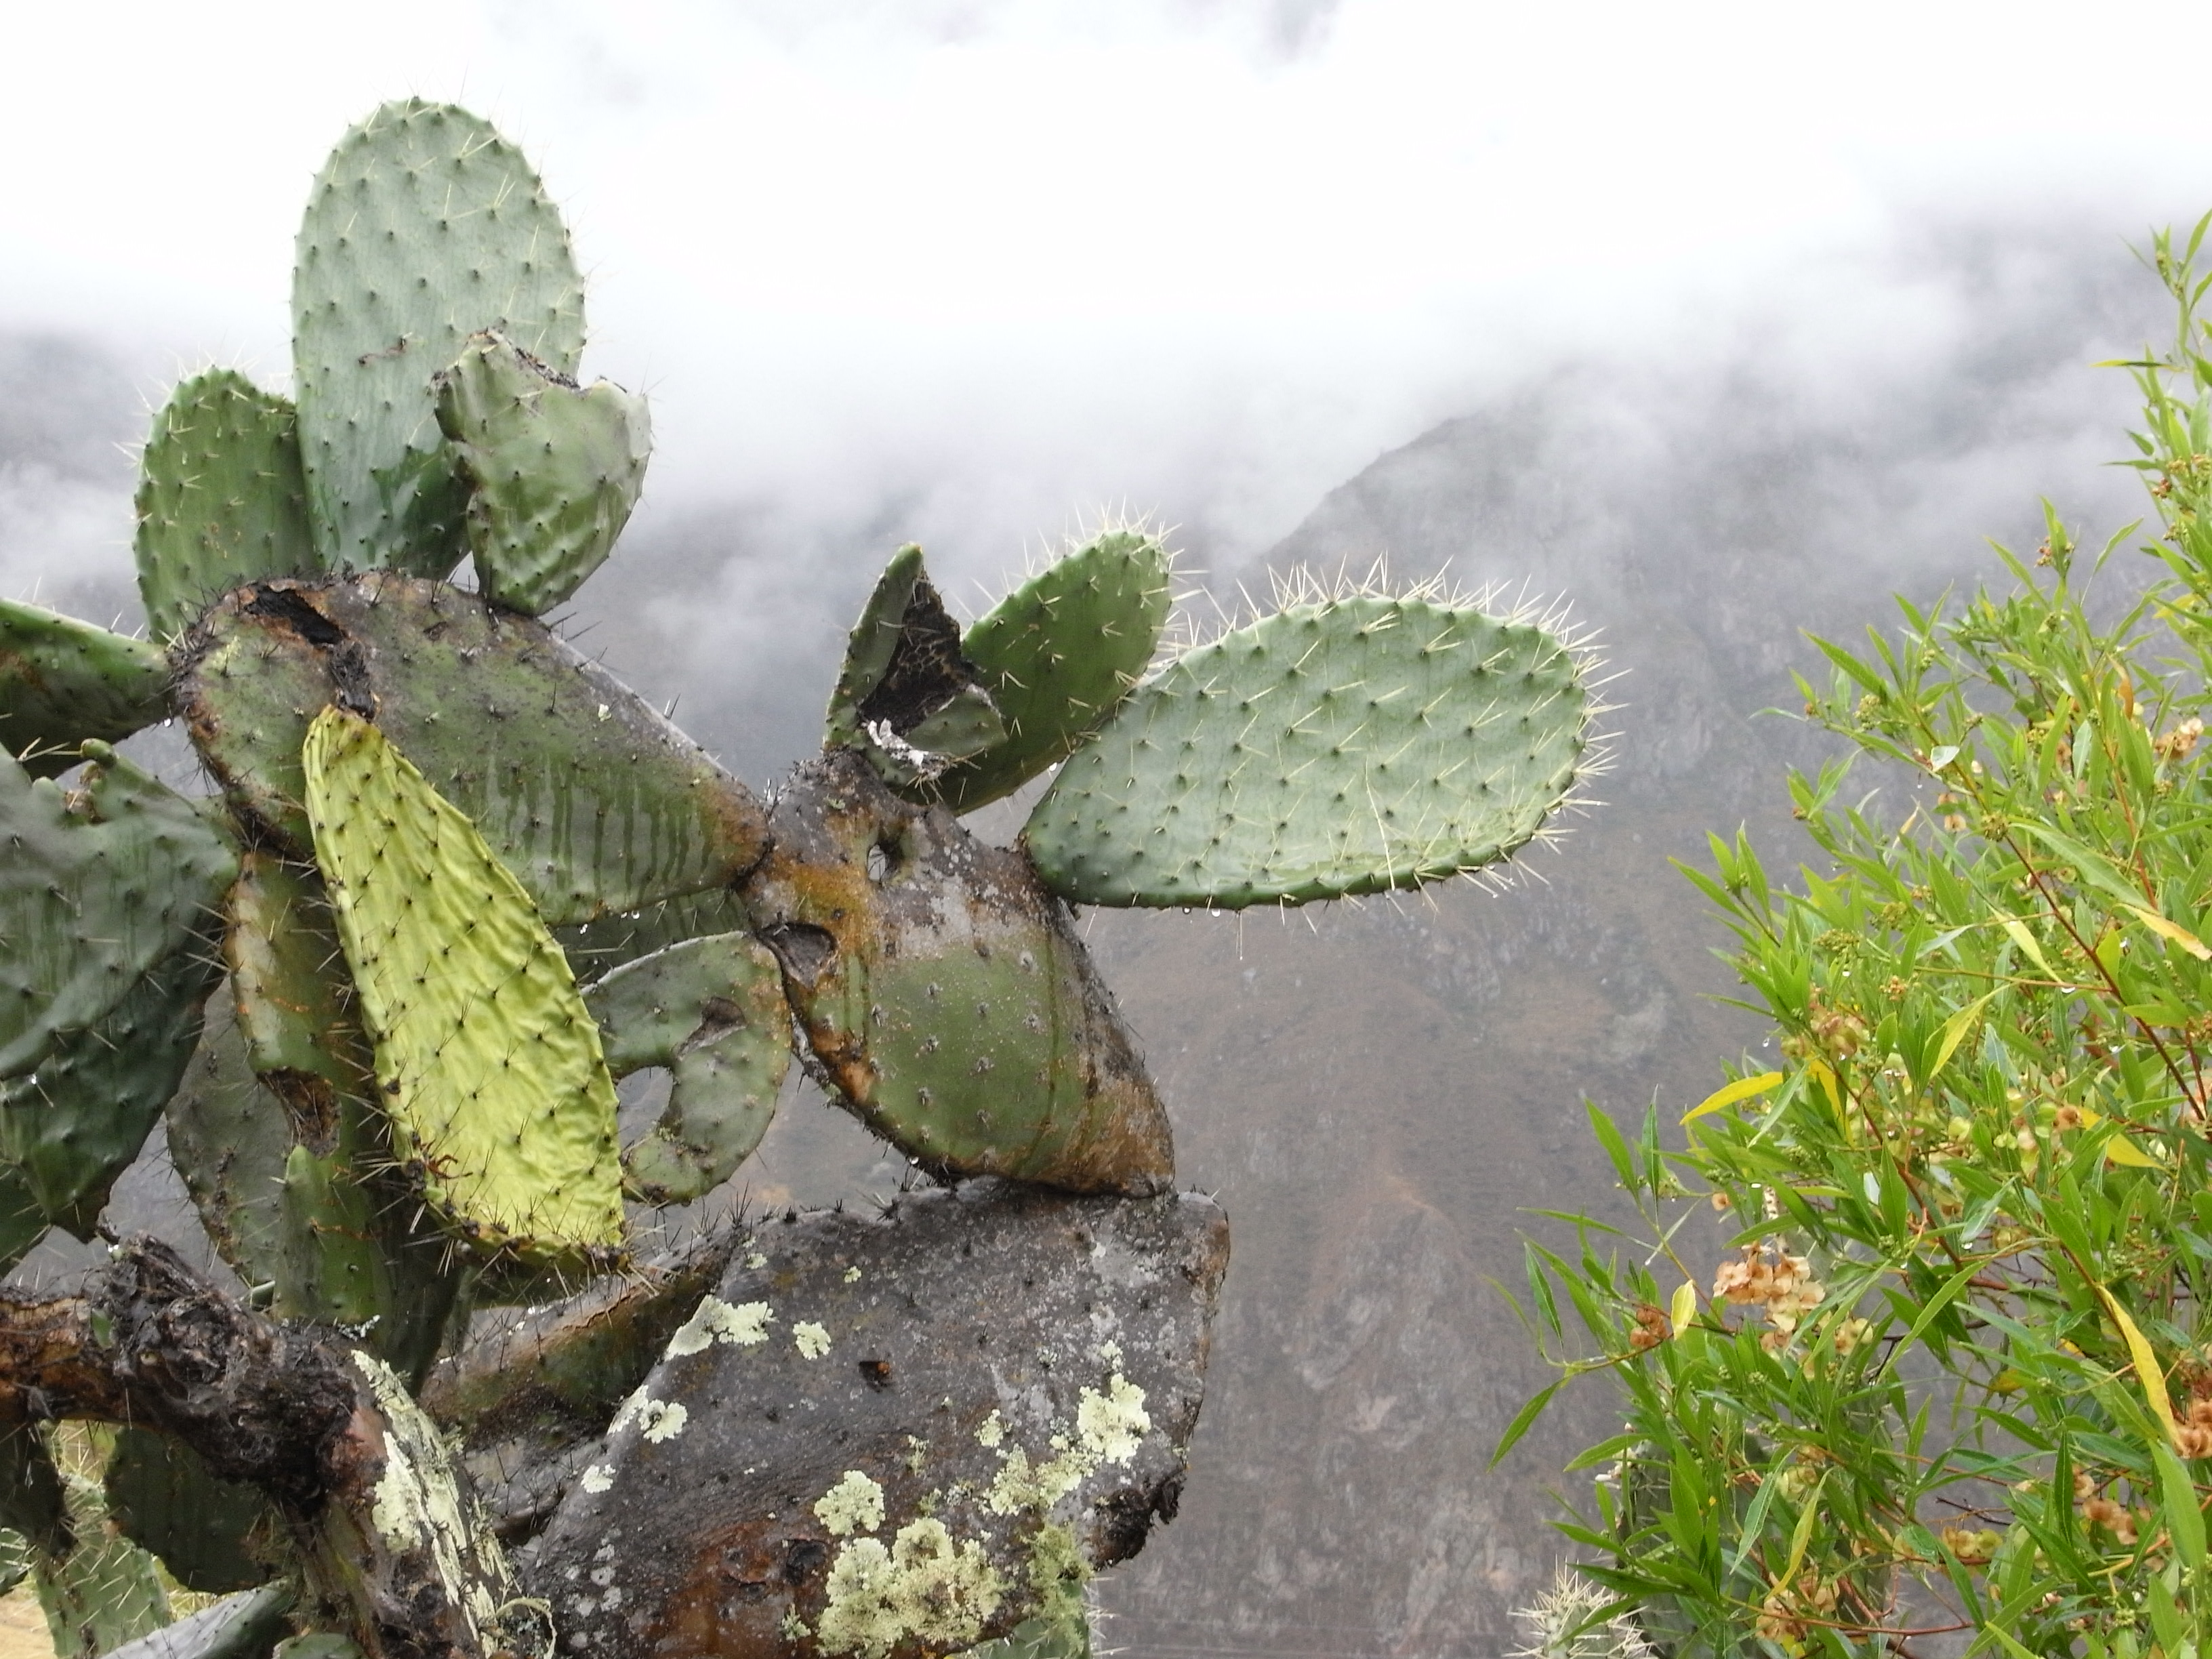 cactuses in the Andes...who would have thought